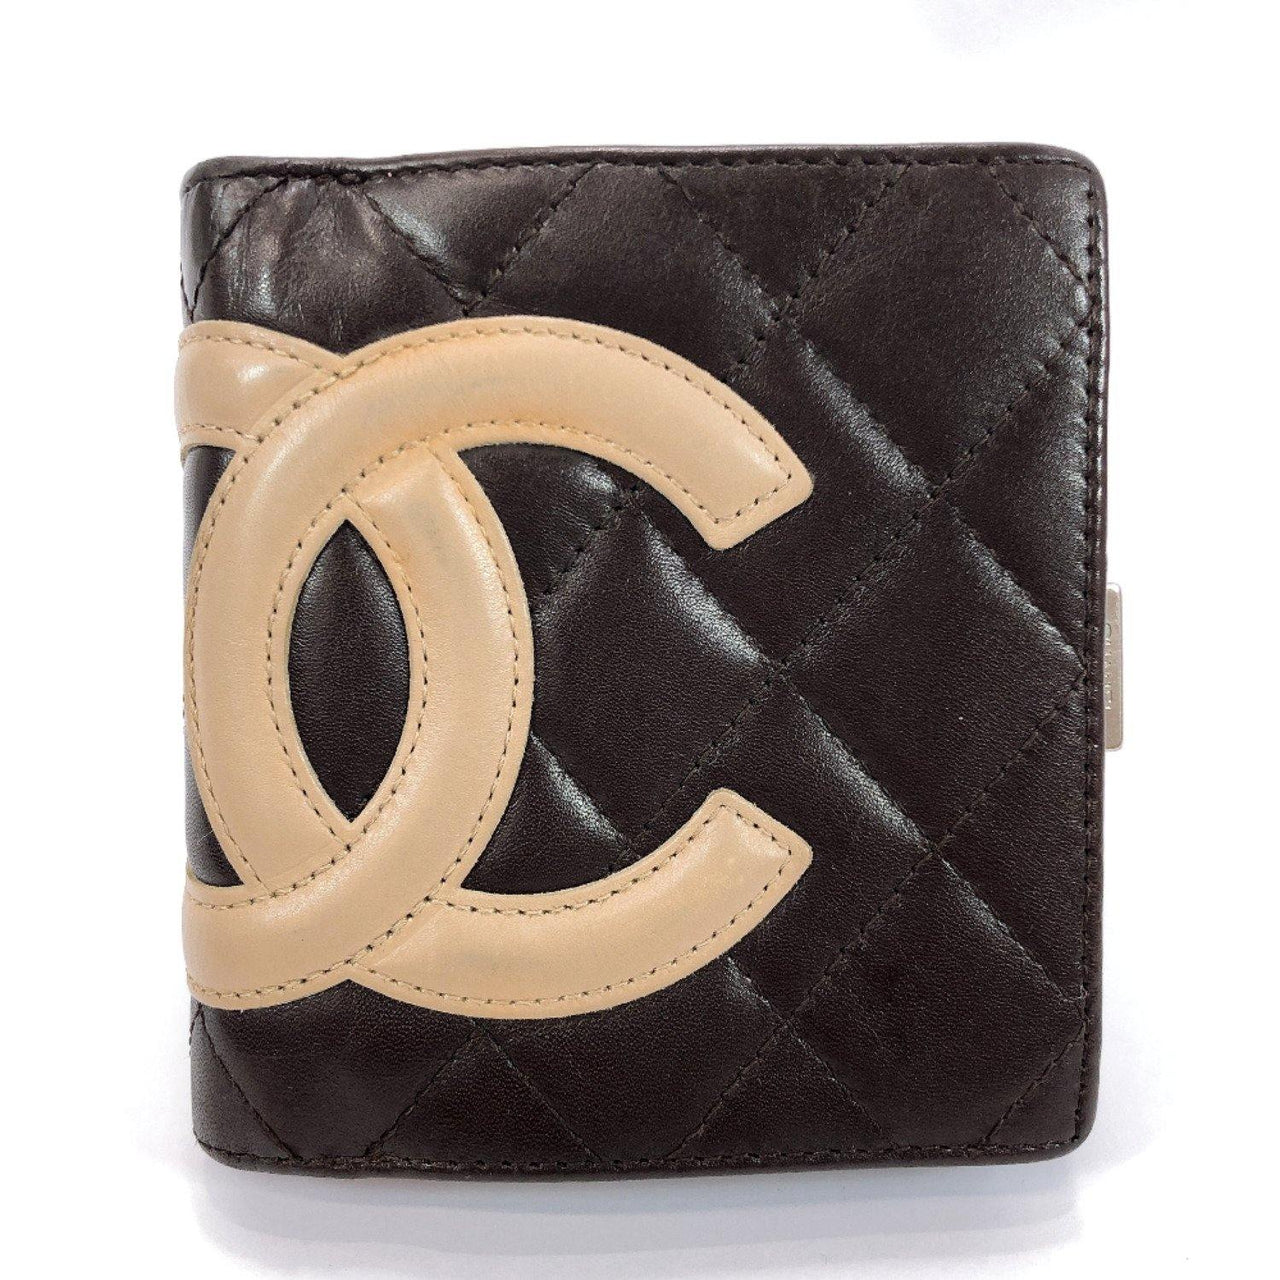 CHANEL wallet Cambon line purse with a clasp lambskin Brown Women Used - JP-BRANDS.com